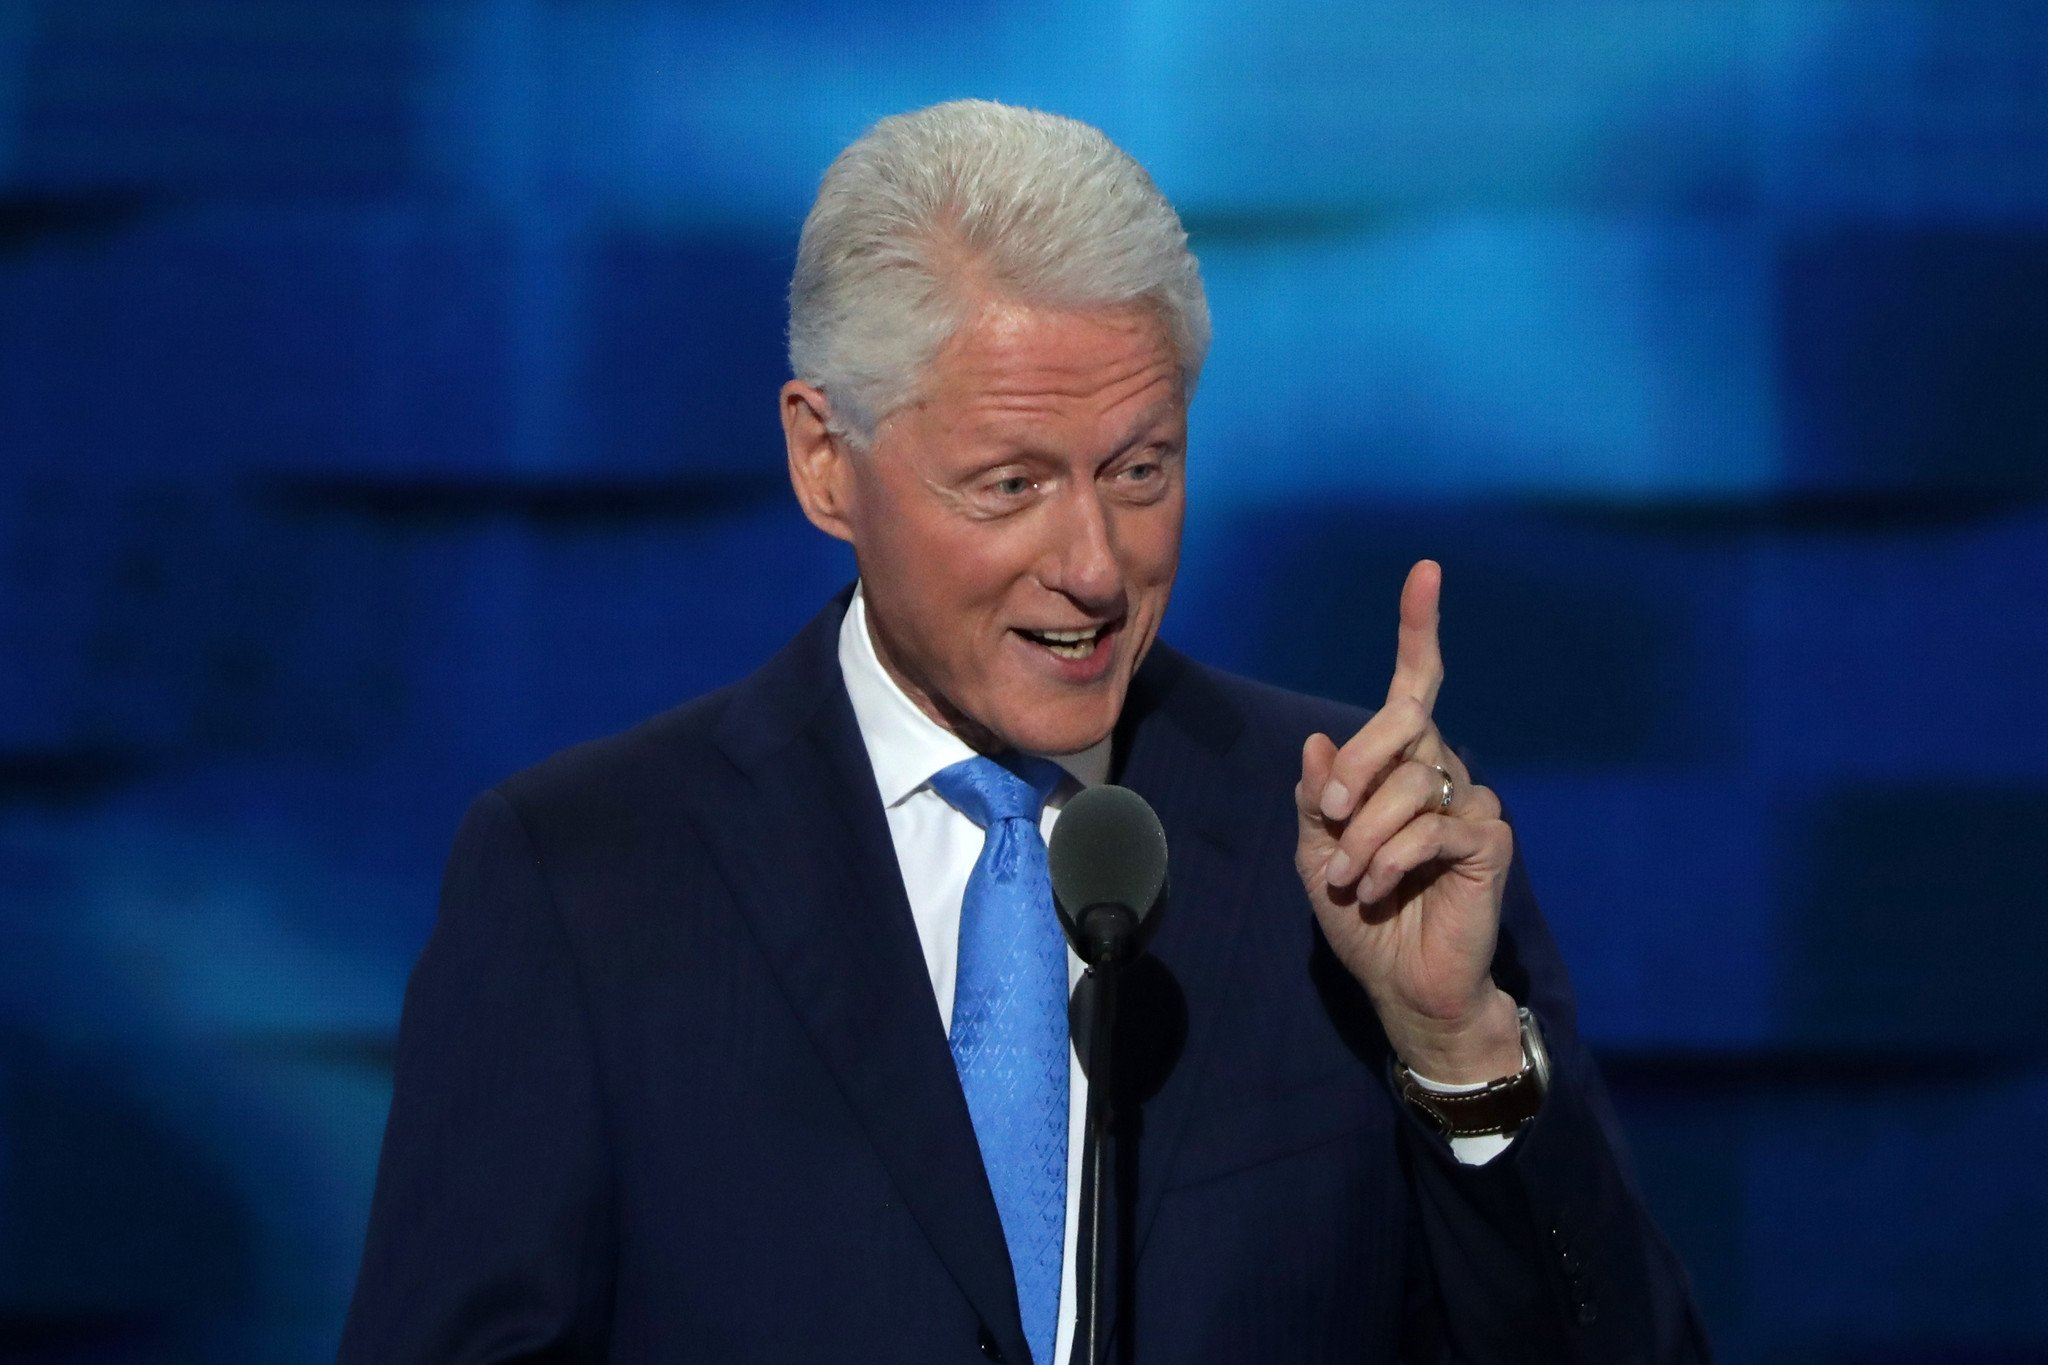 "Former President Bill Clinton wants to weigh in on a federal court's decision to unseal records surrounding the Monica Lewinsky sex scandal. Clinton's criminal defense attorney, David Kendall, said his client wants to ""present his position"" about revealing to the public records related to subpoenas over the 1998 grand jury investigation into his affair with …"